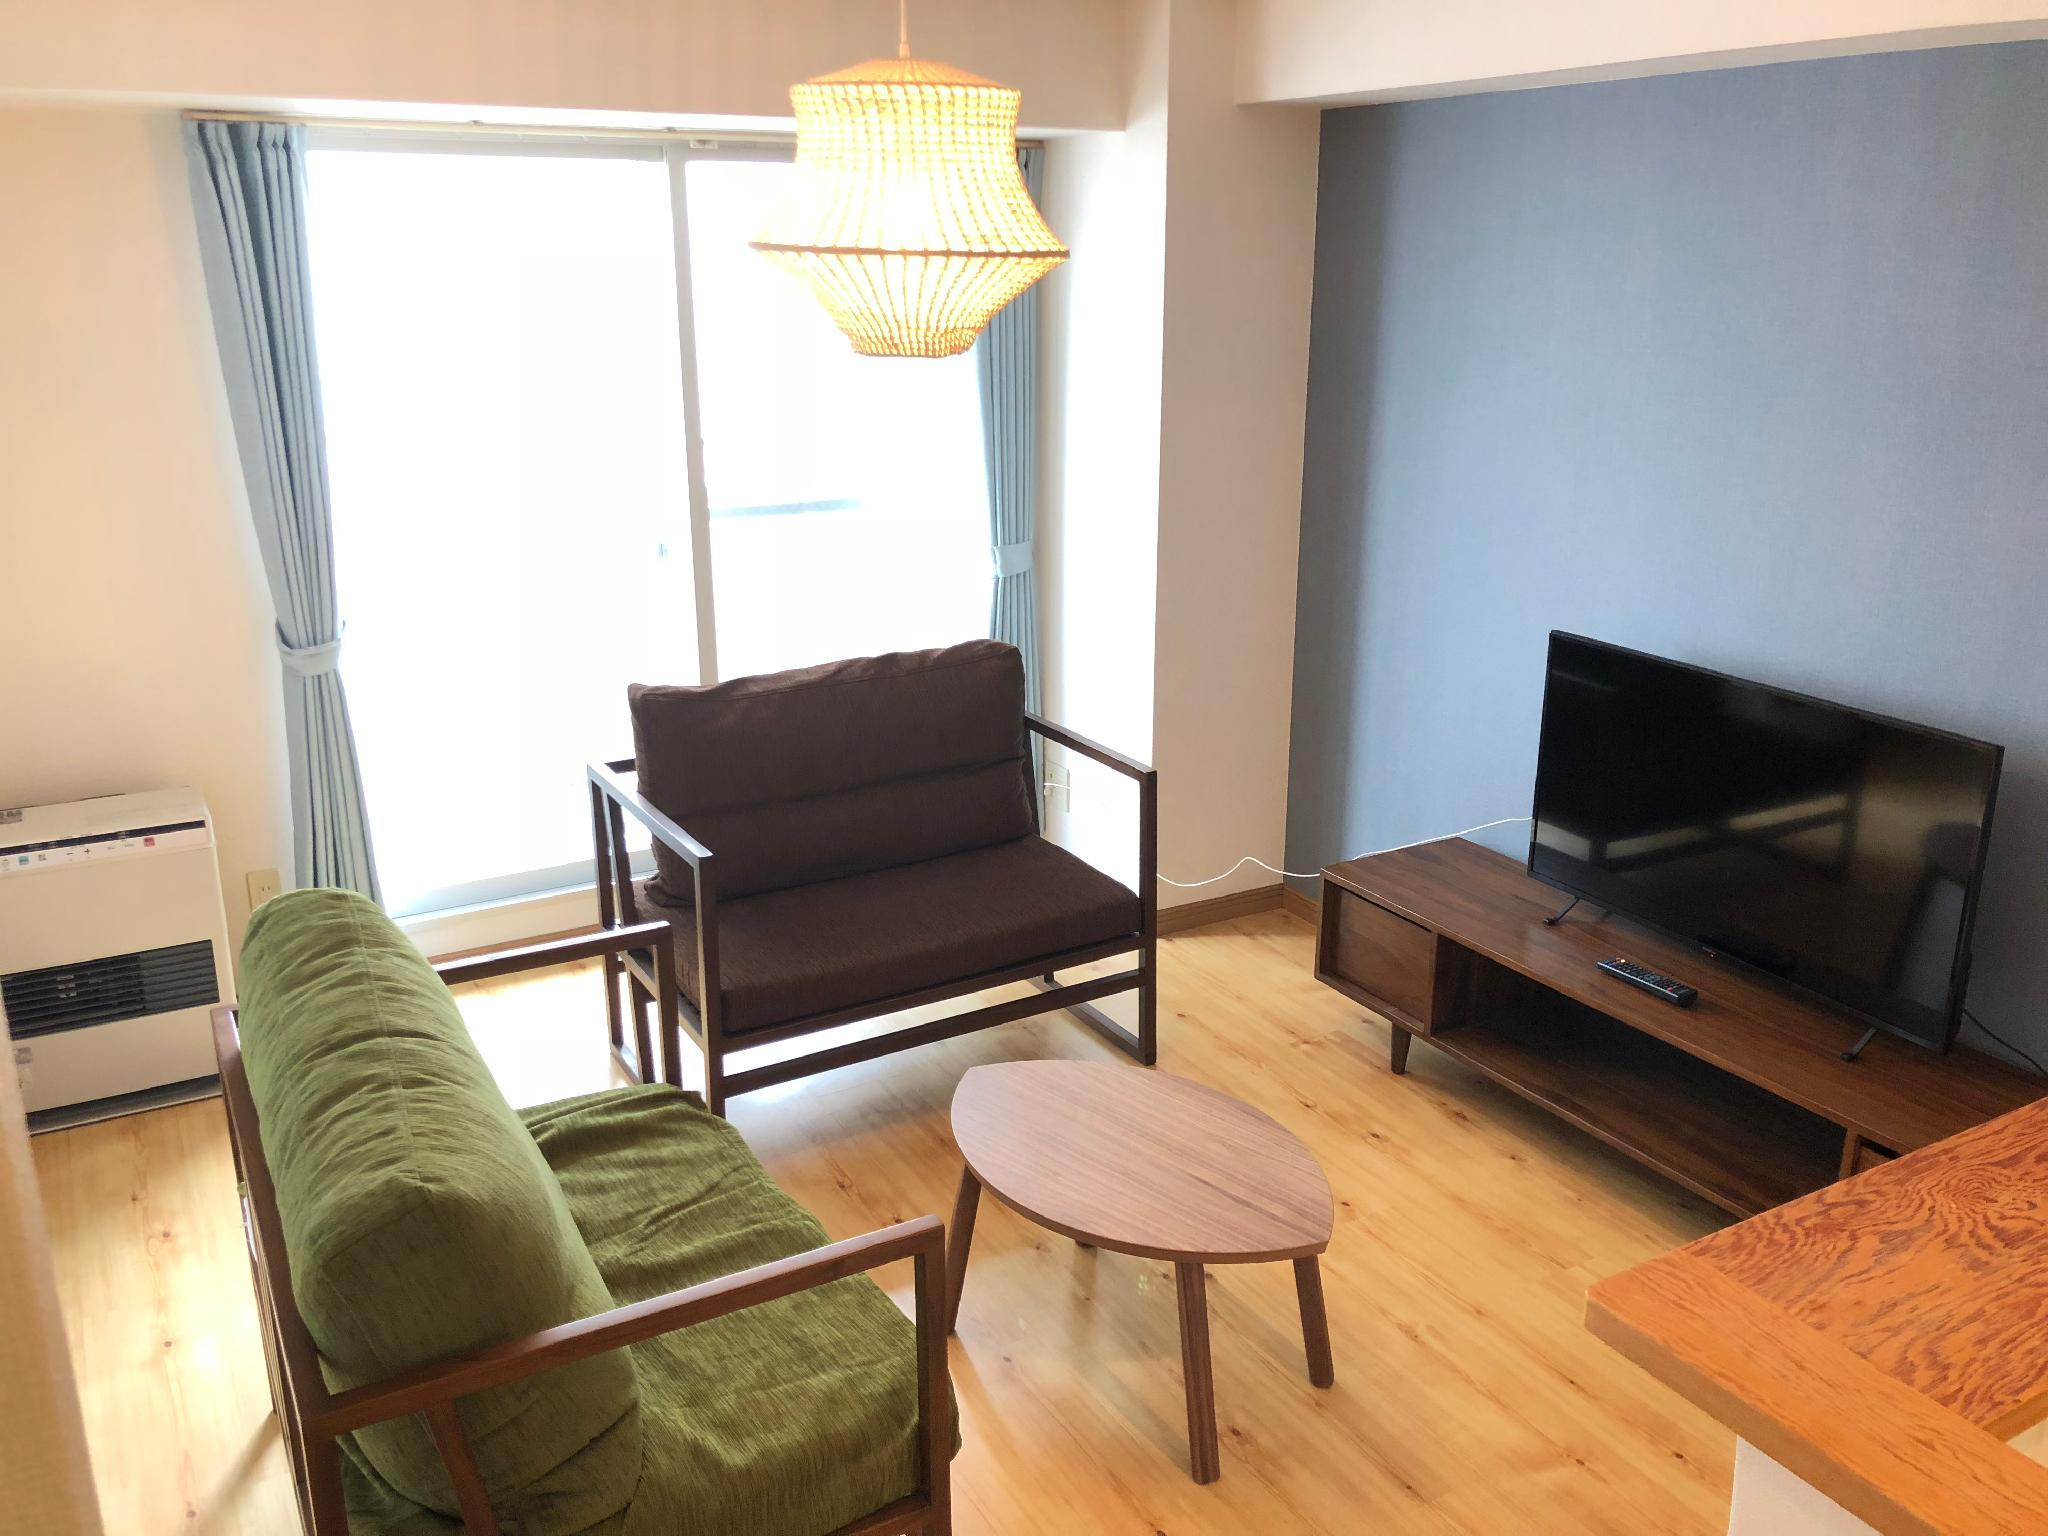 A75 1 Bedroom Apartment In Sapporo